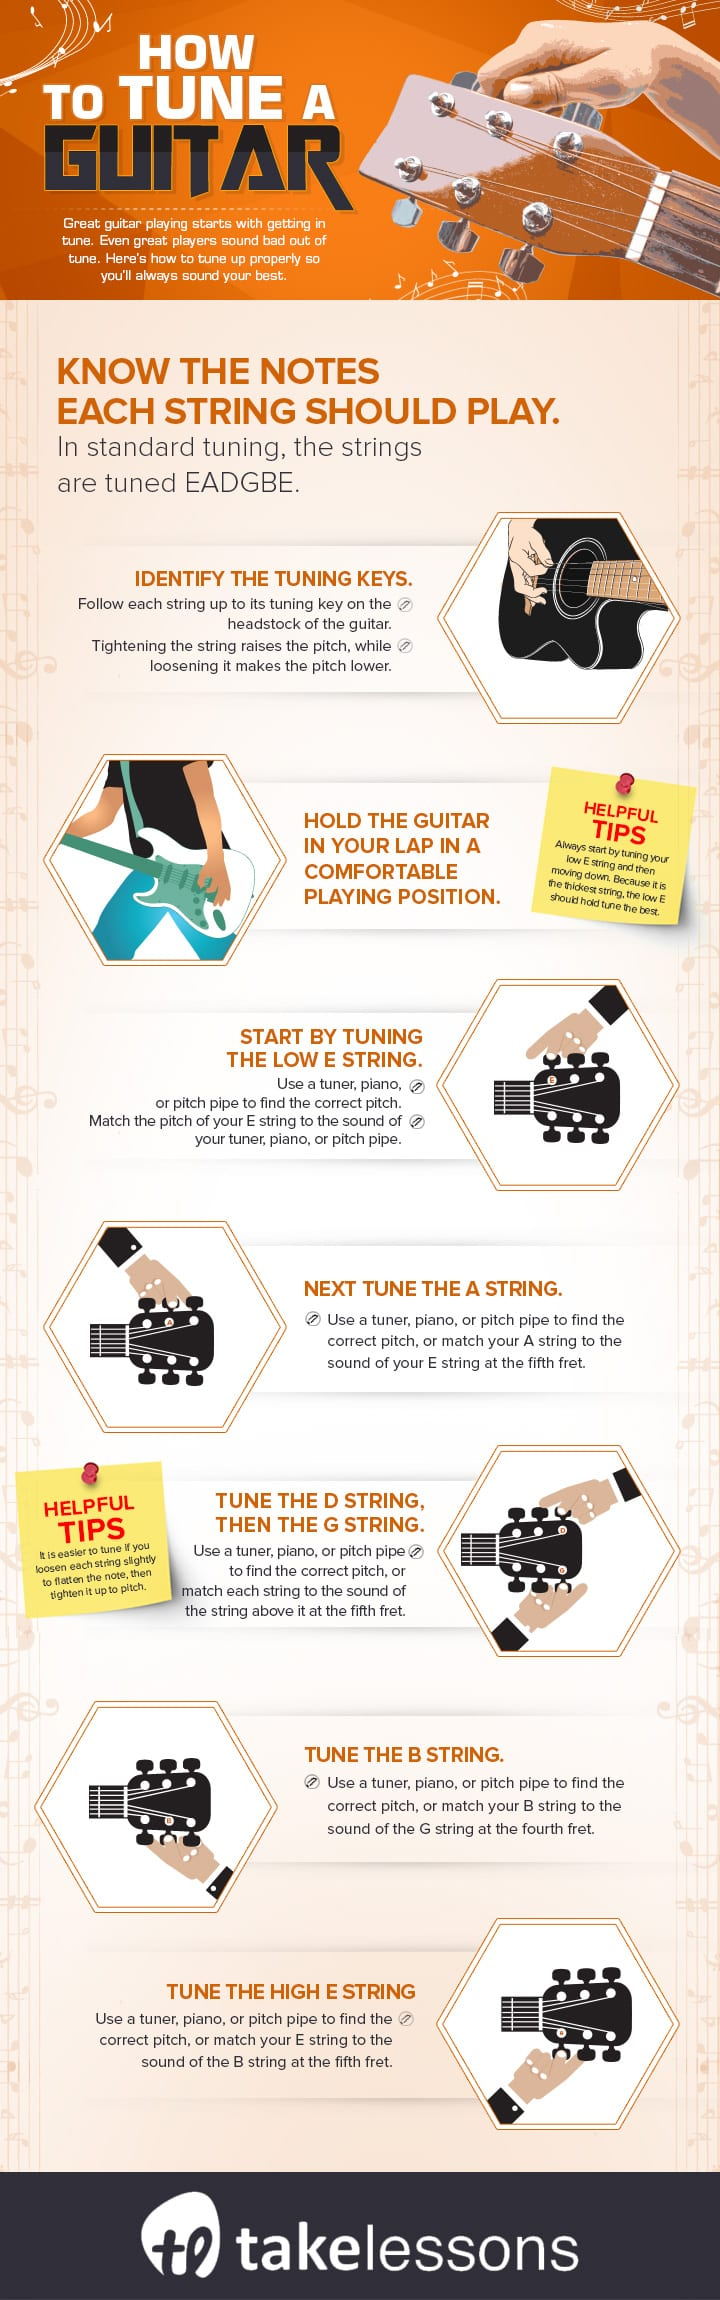 how to tune a guitar infographic